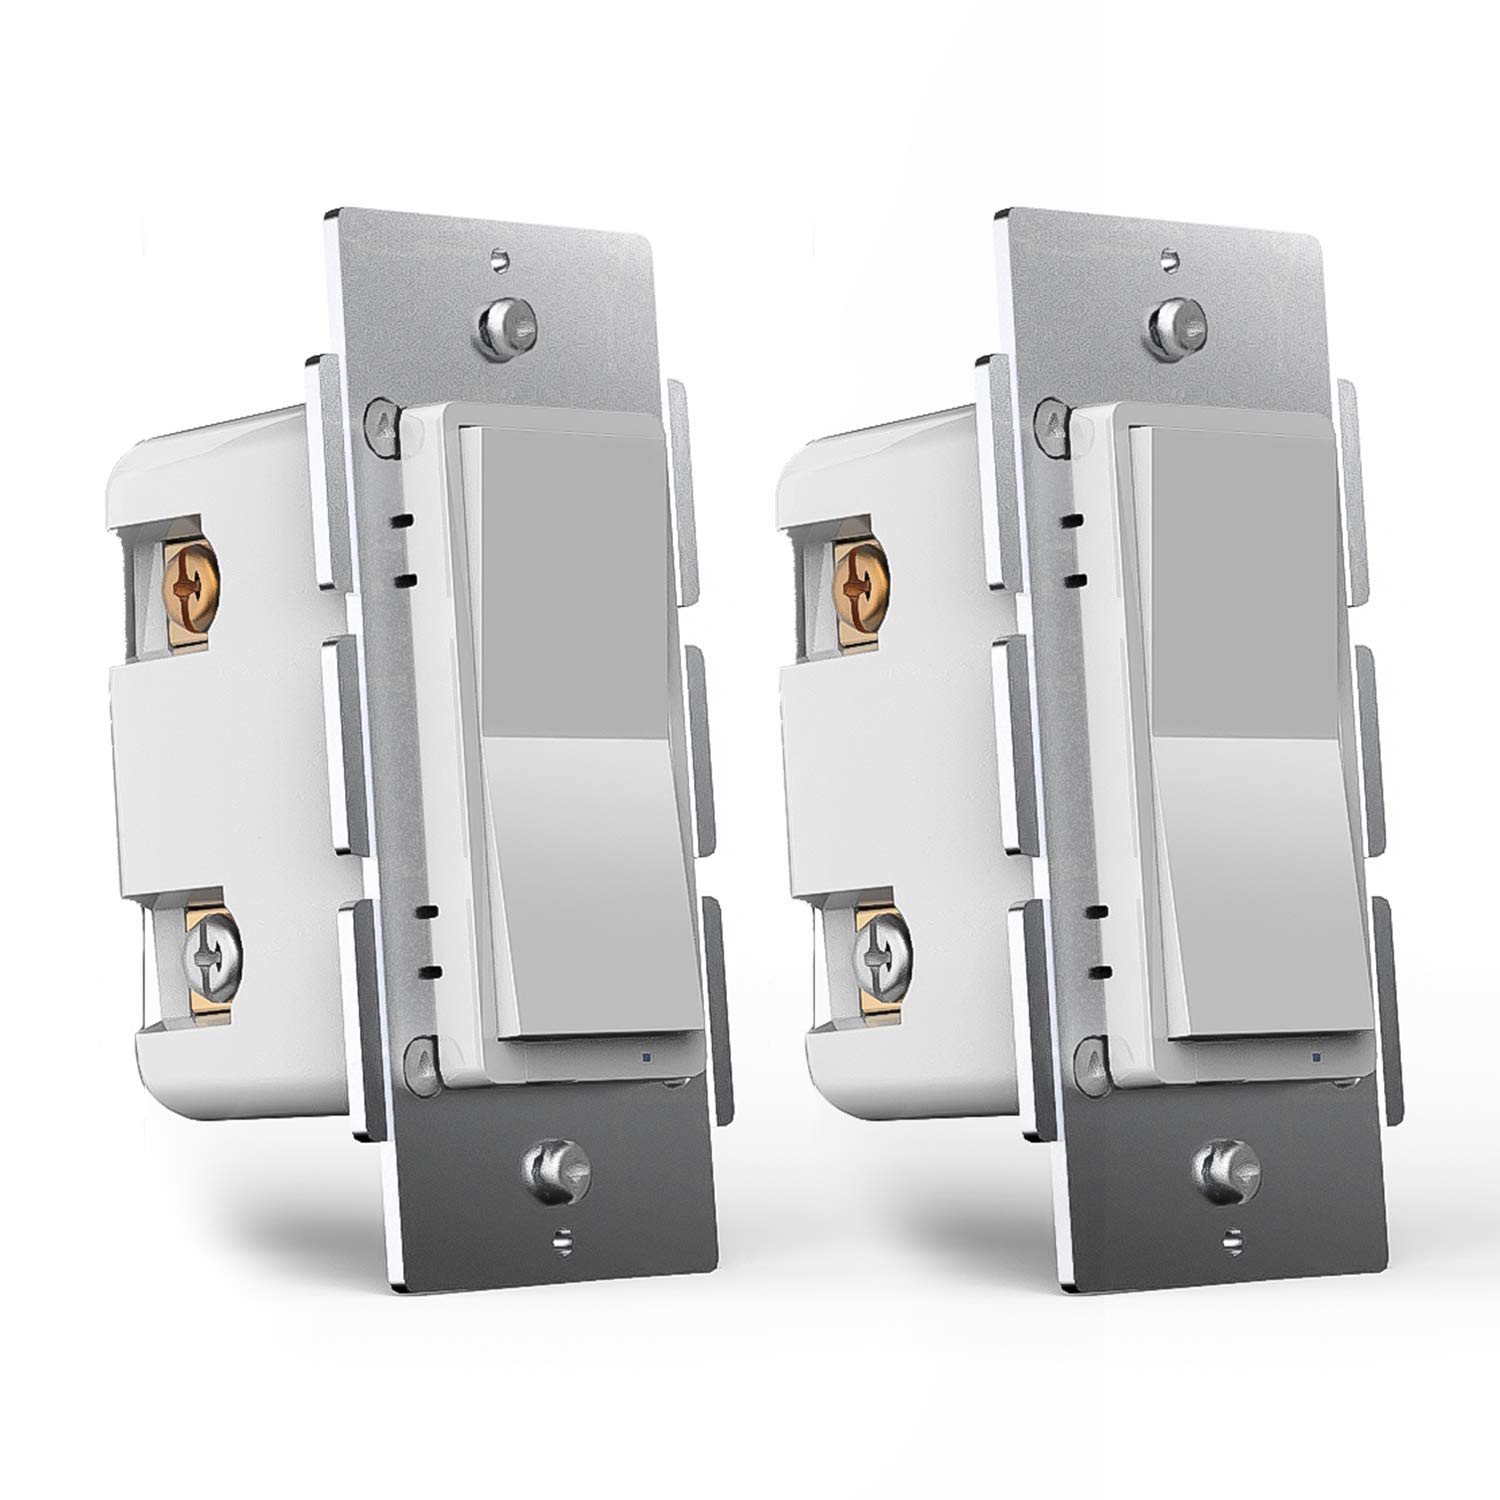 3-Way Smart WiFi Dimmer Light Switch, in-Wall, No Hub Required, Compatible with Alexa and Google Home, ETL and FCC Listed (WF31 2 Pack)